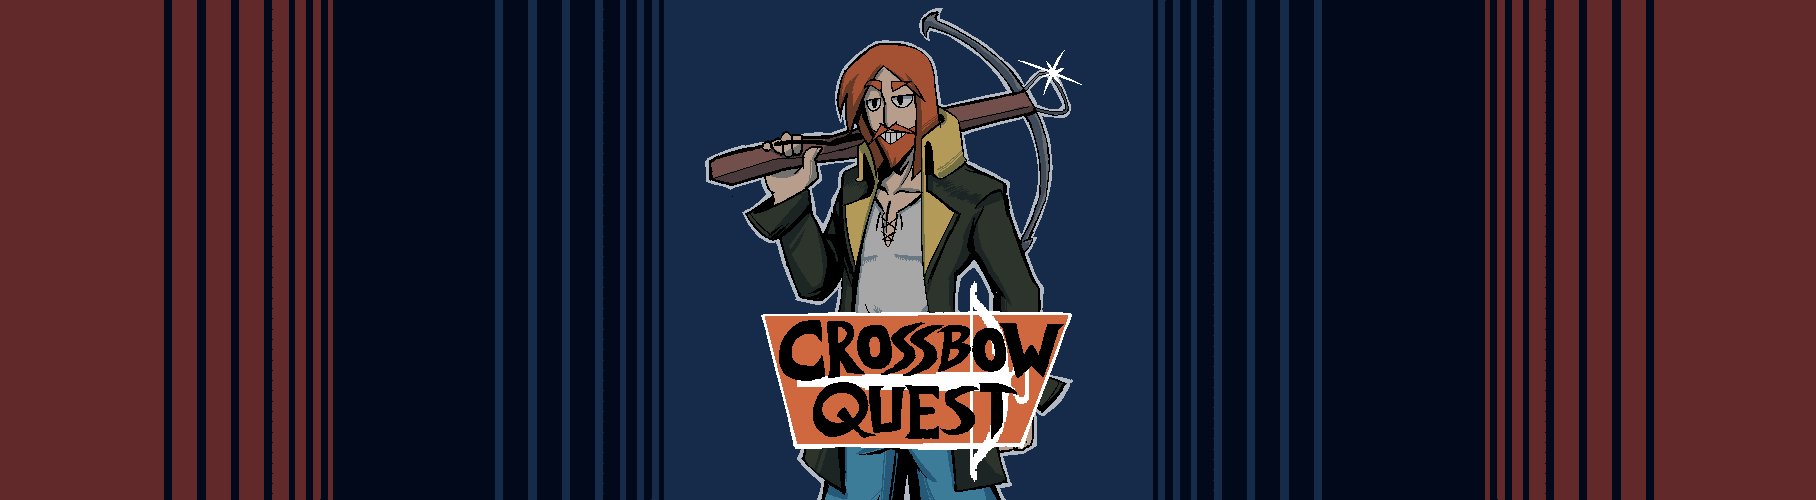 Crossbow Quest